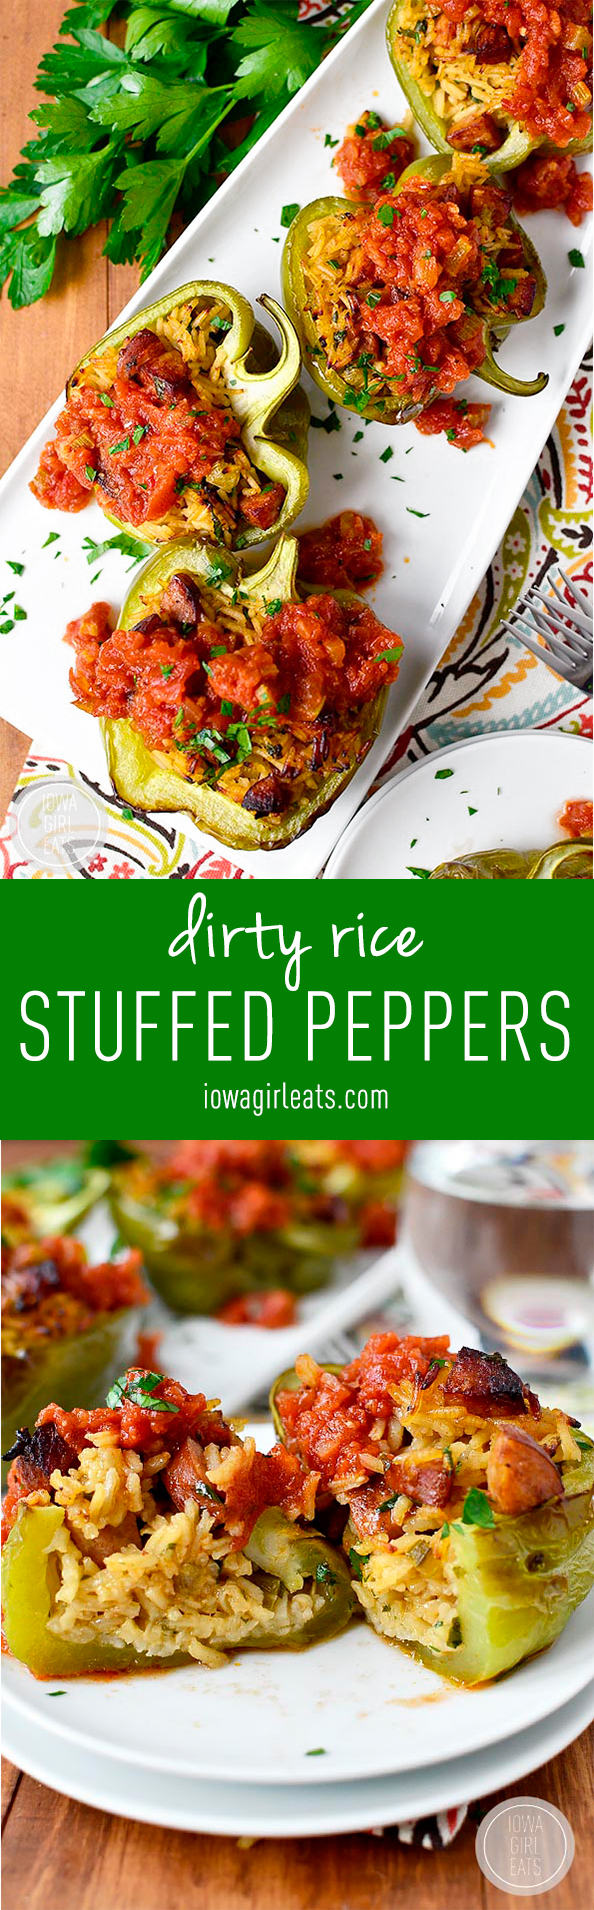 Dirty Rice Stuffed Peppers with Red Sauce are healthy and satisfying! #glutenfree | iowagirleats.com